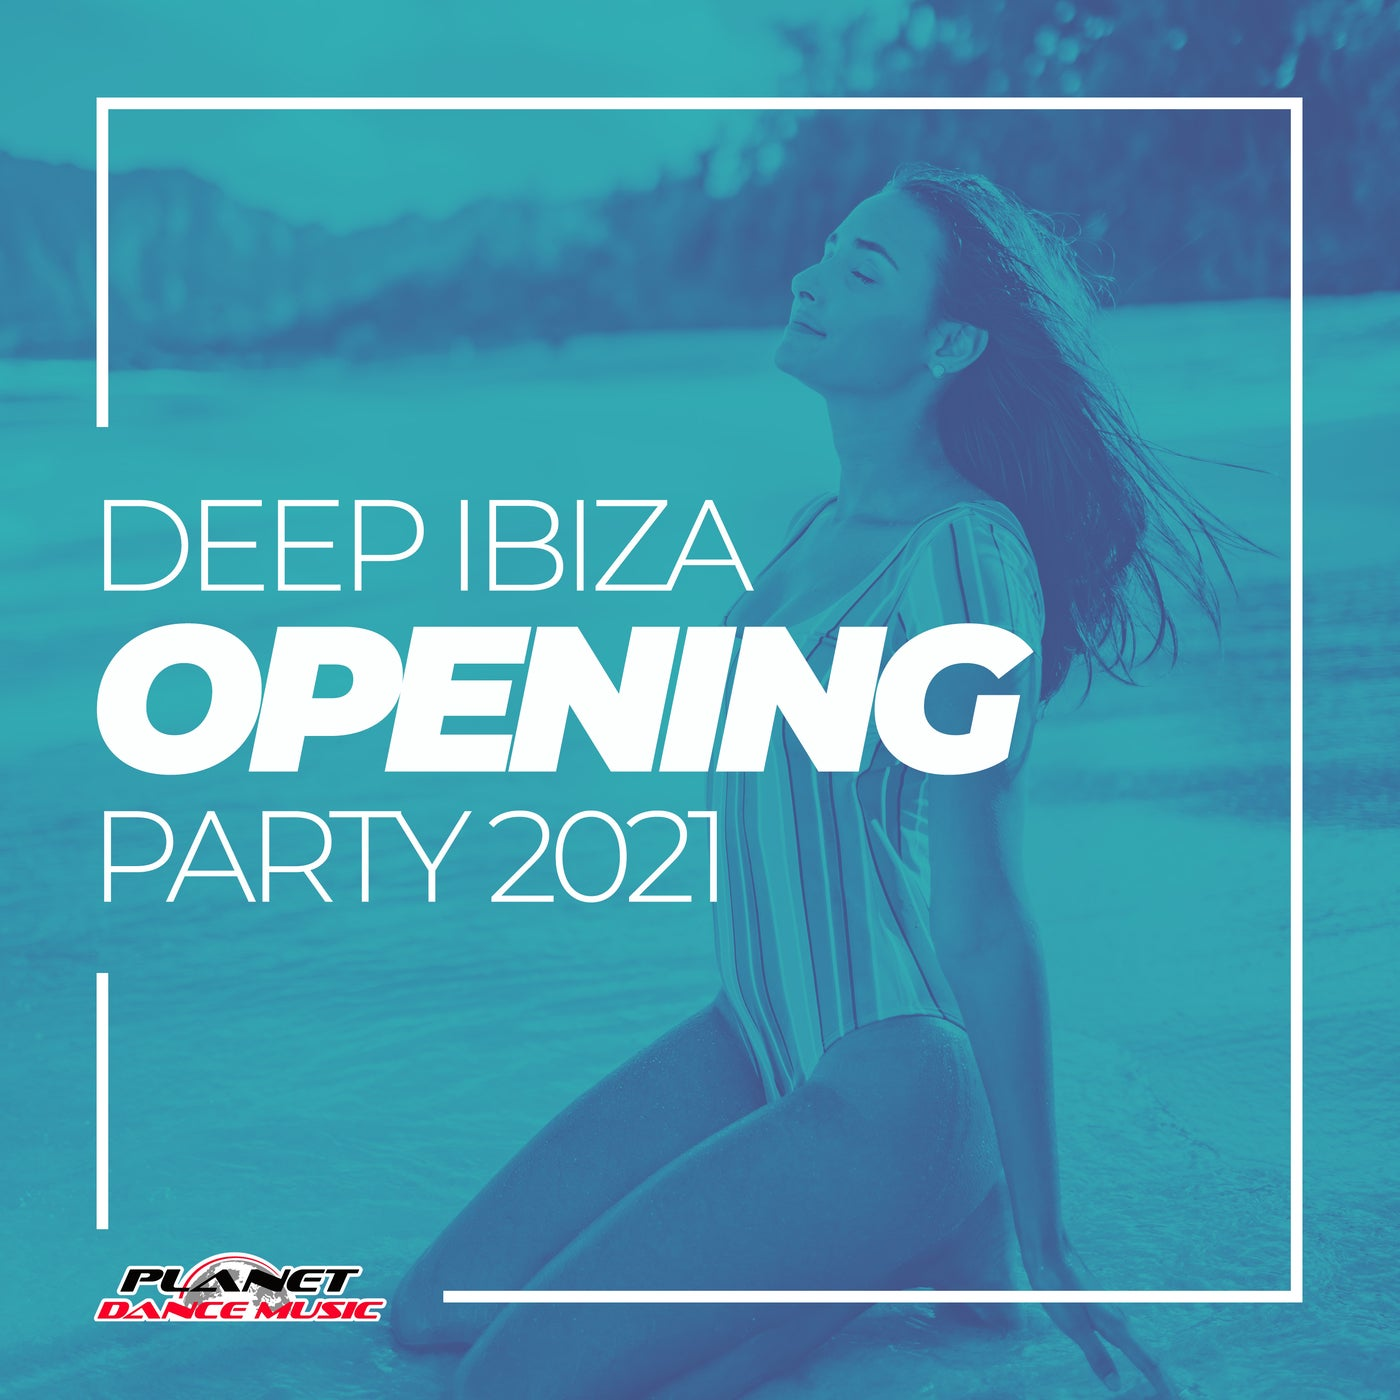 Various Performers - Deep Ibiza Opening Party 2021 (2021)